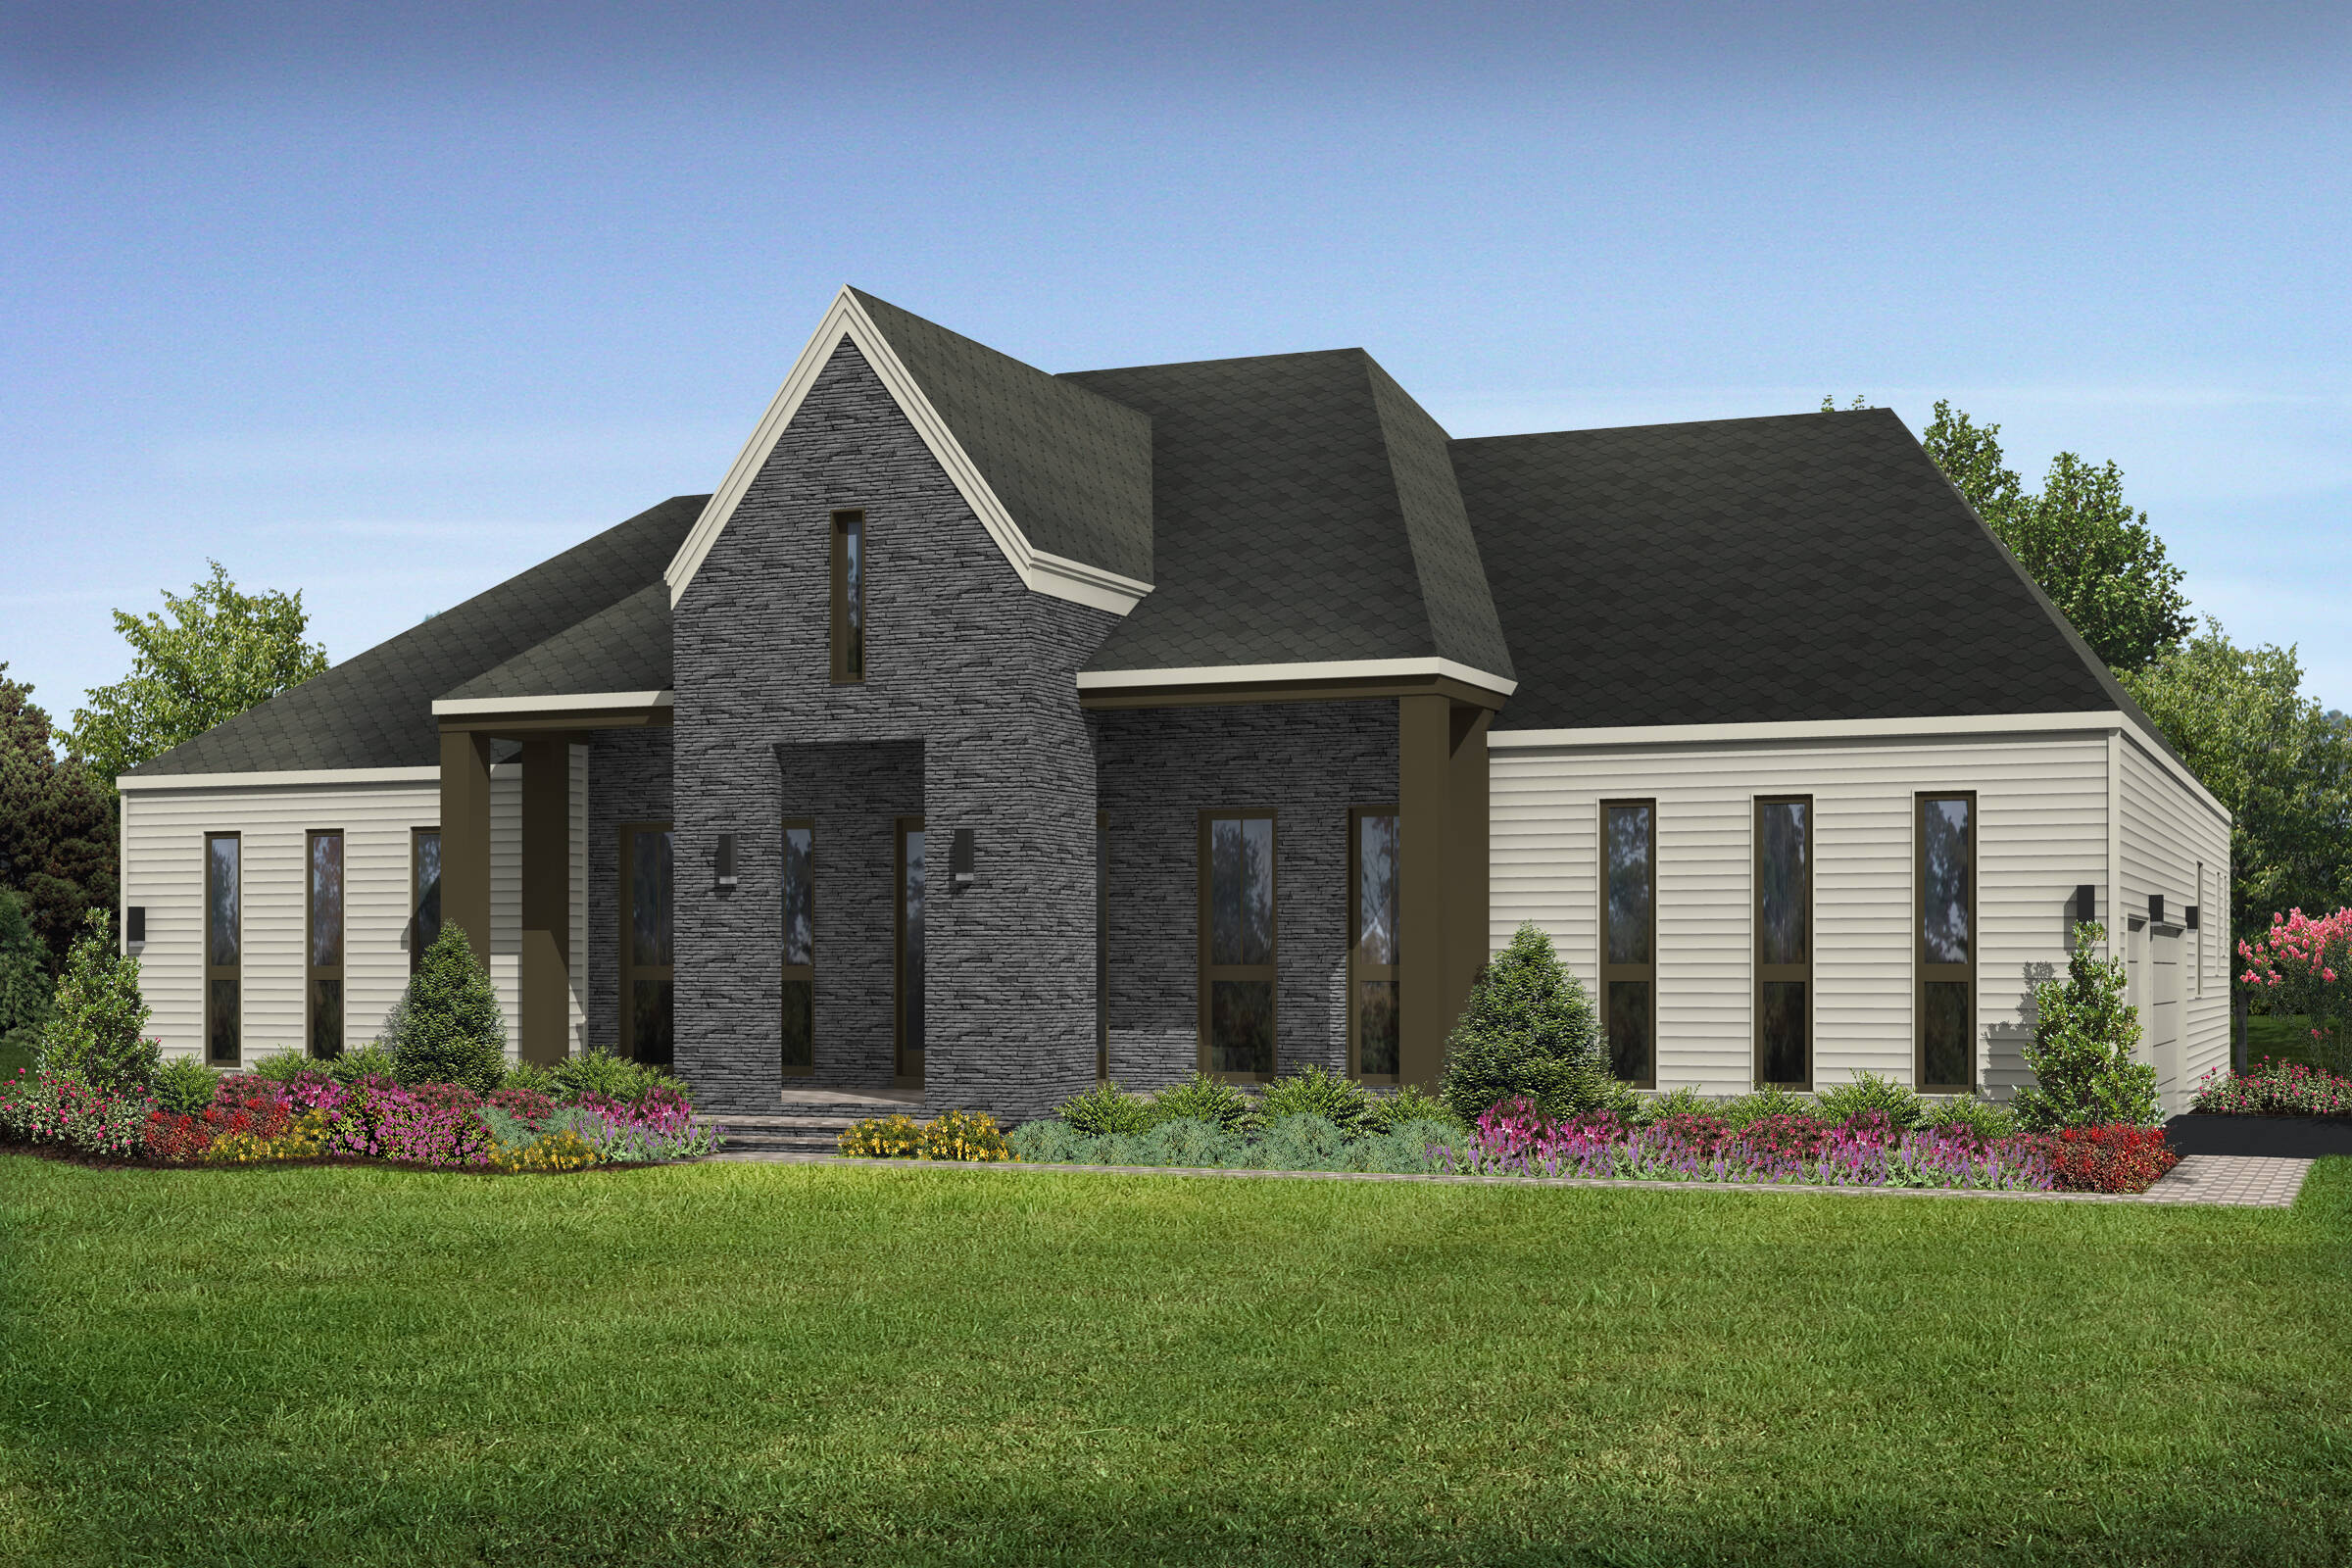 noorderwind nts new homes at line k willowsford in virginia